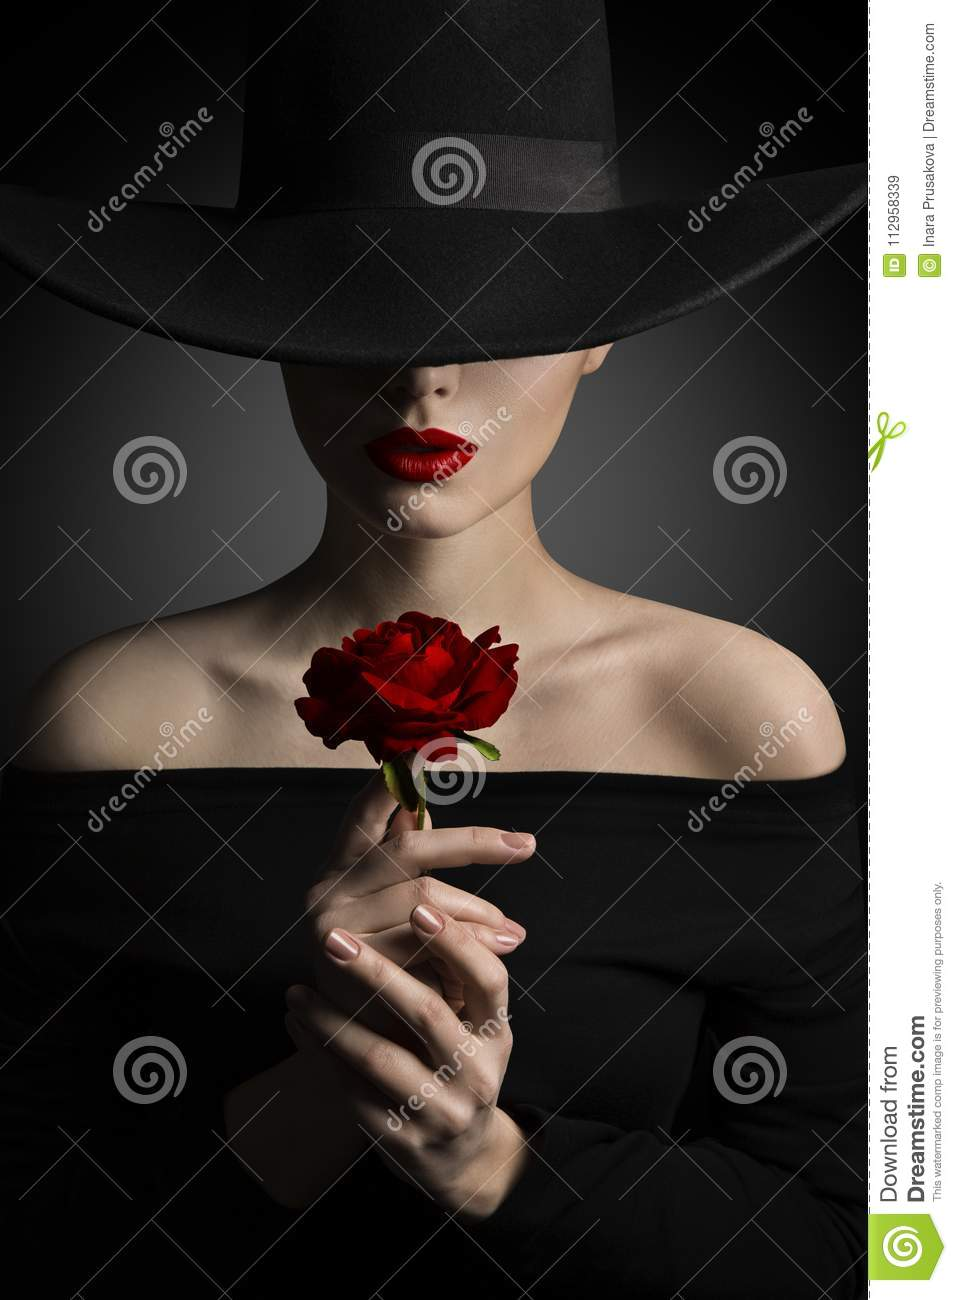 Woman in Hat holding Rose Flower in Hands, Fashion Model Beauty